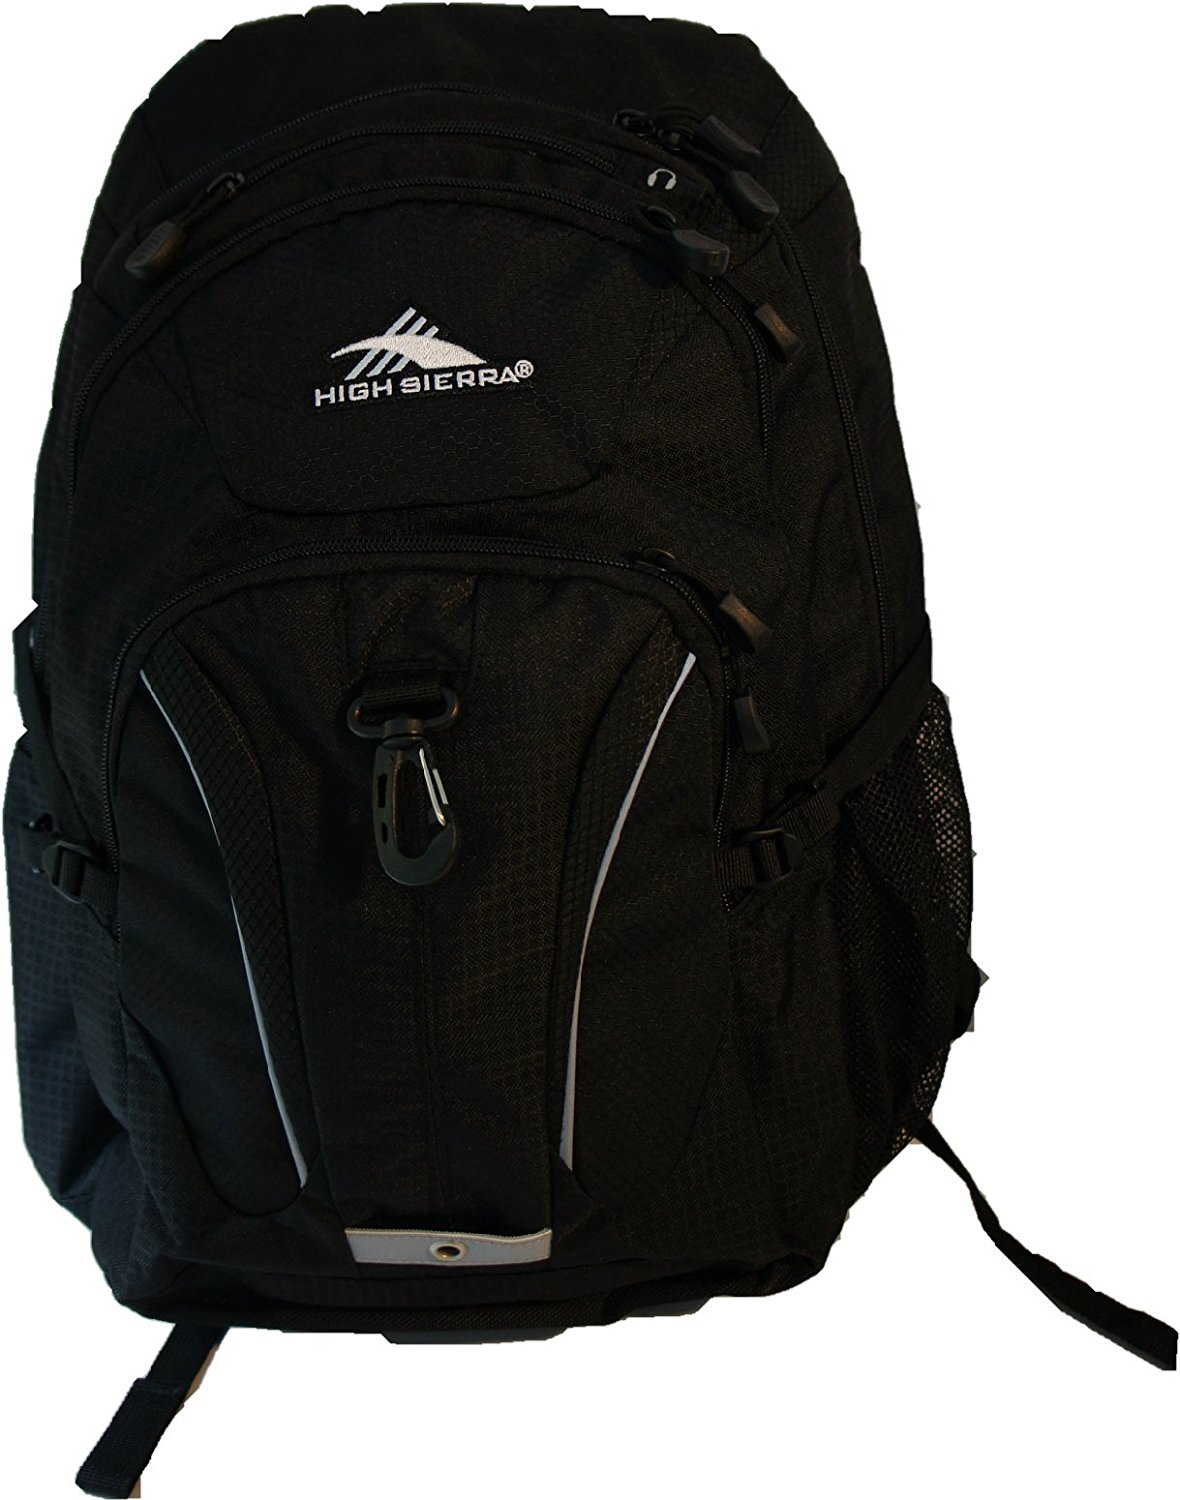 riprap backpack